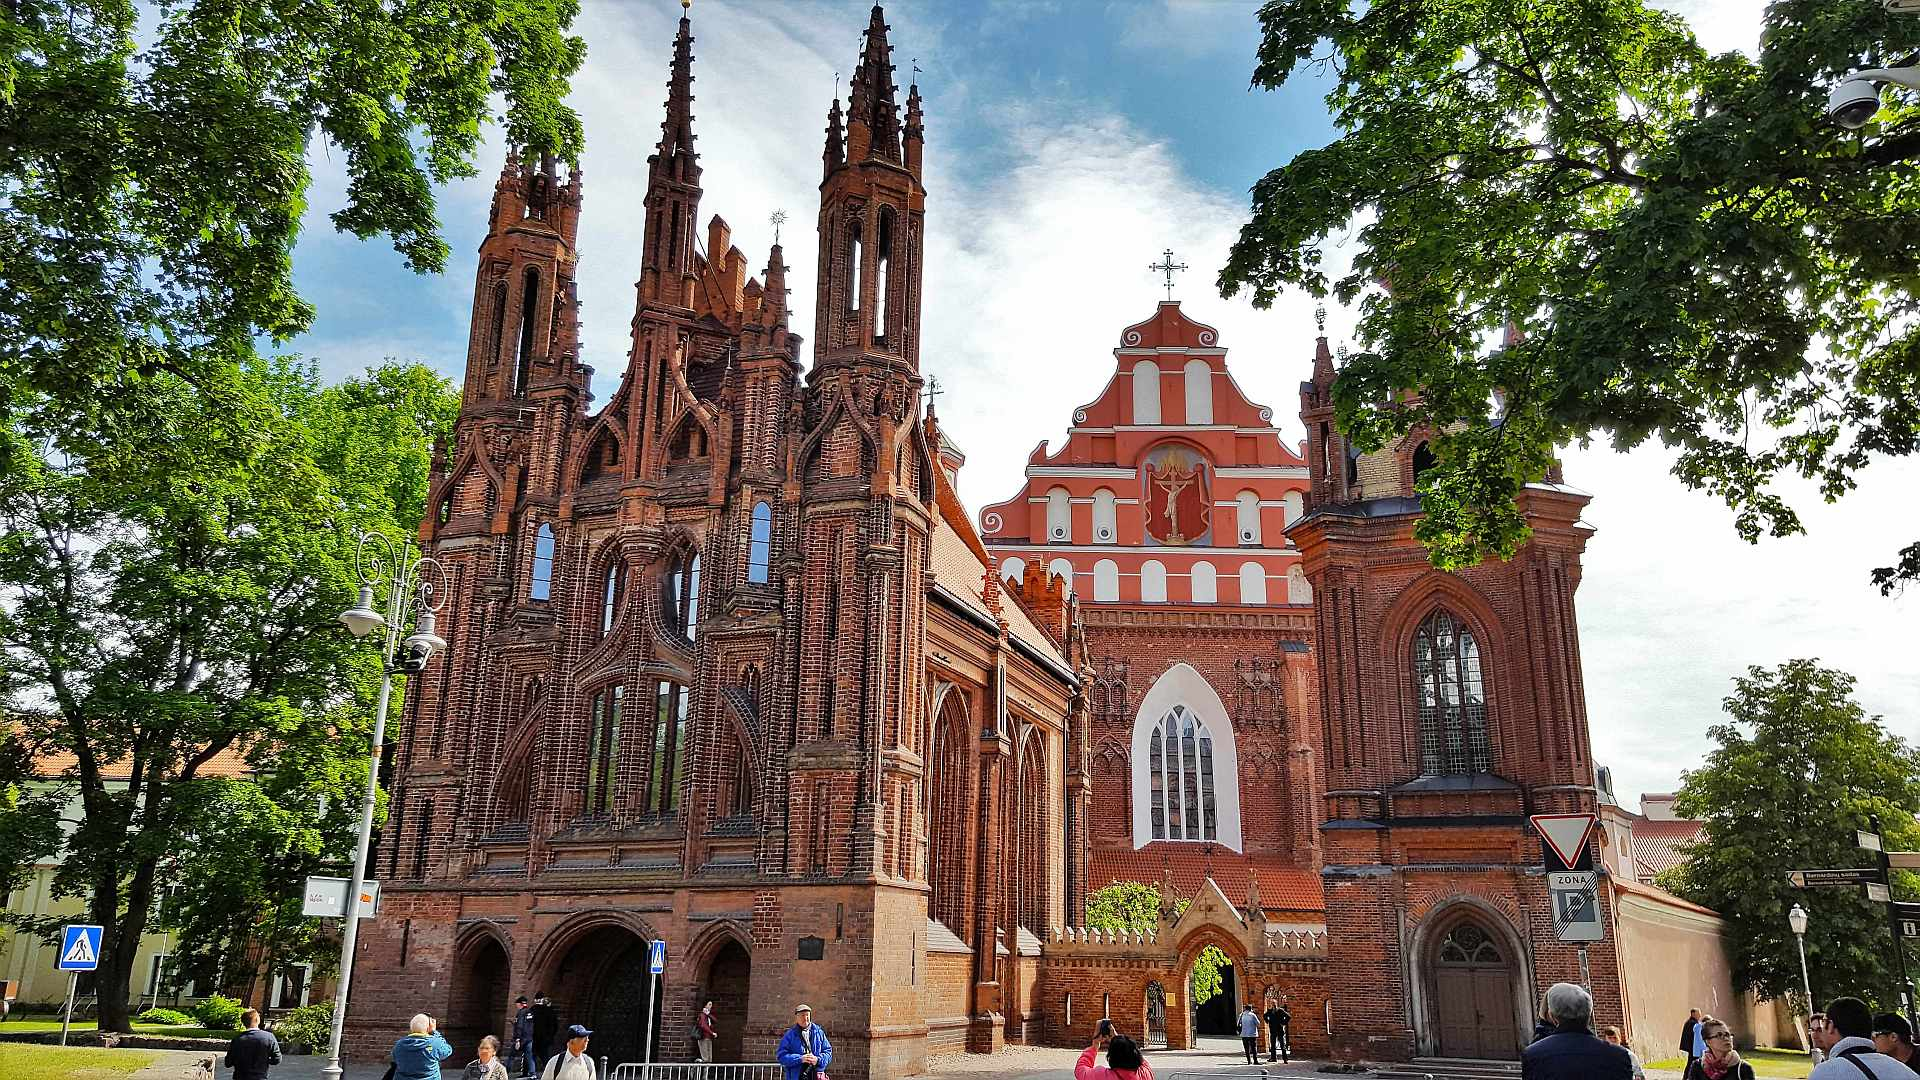 St Anne's and Bernadine's Churches - Vilnius - Trivo.ro